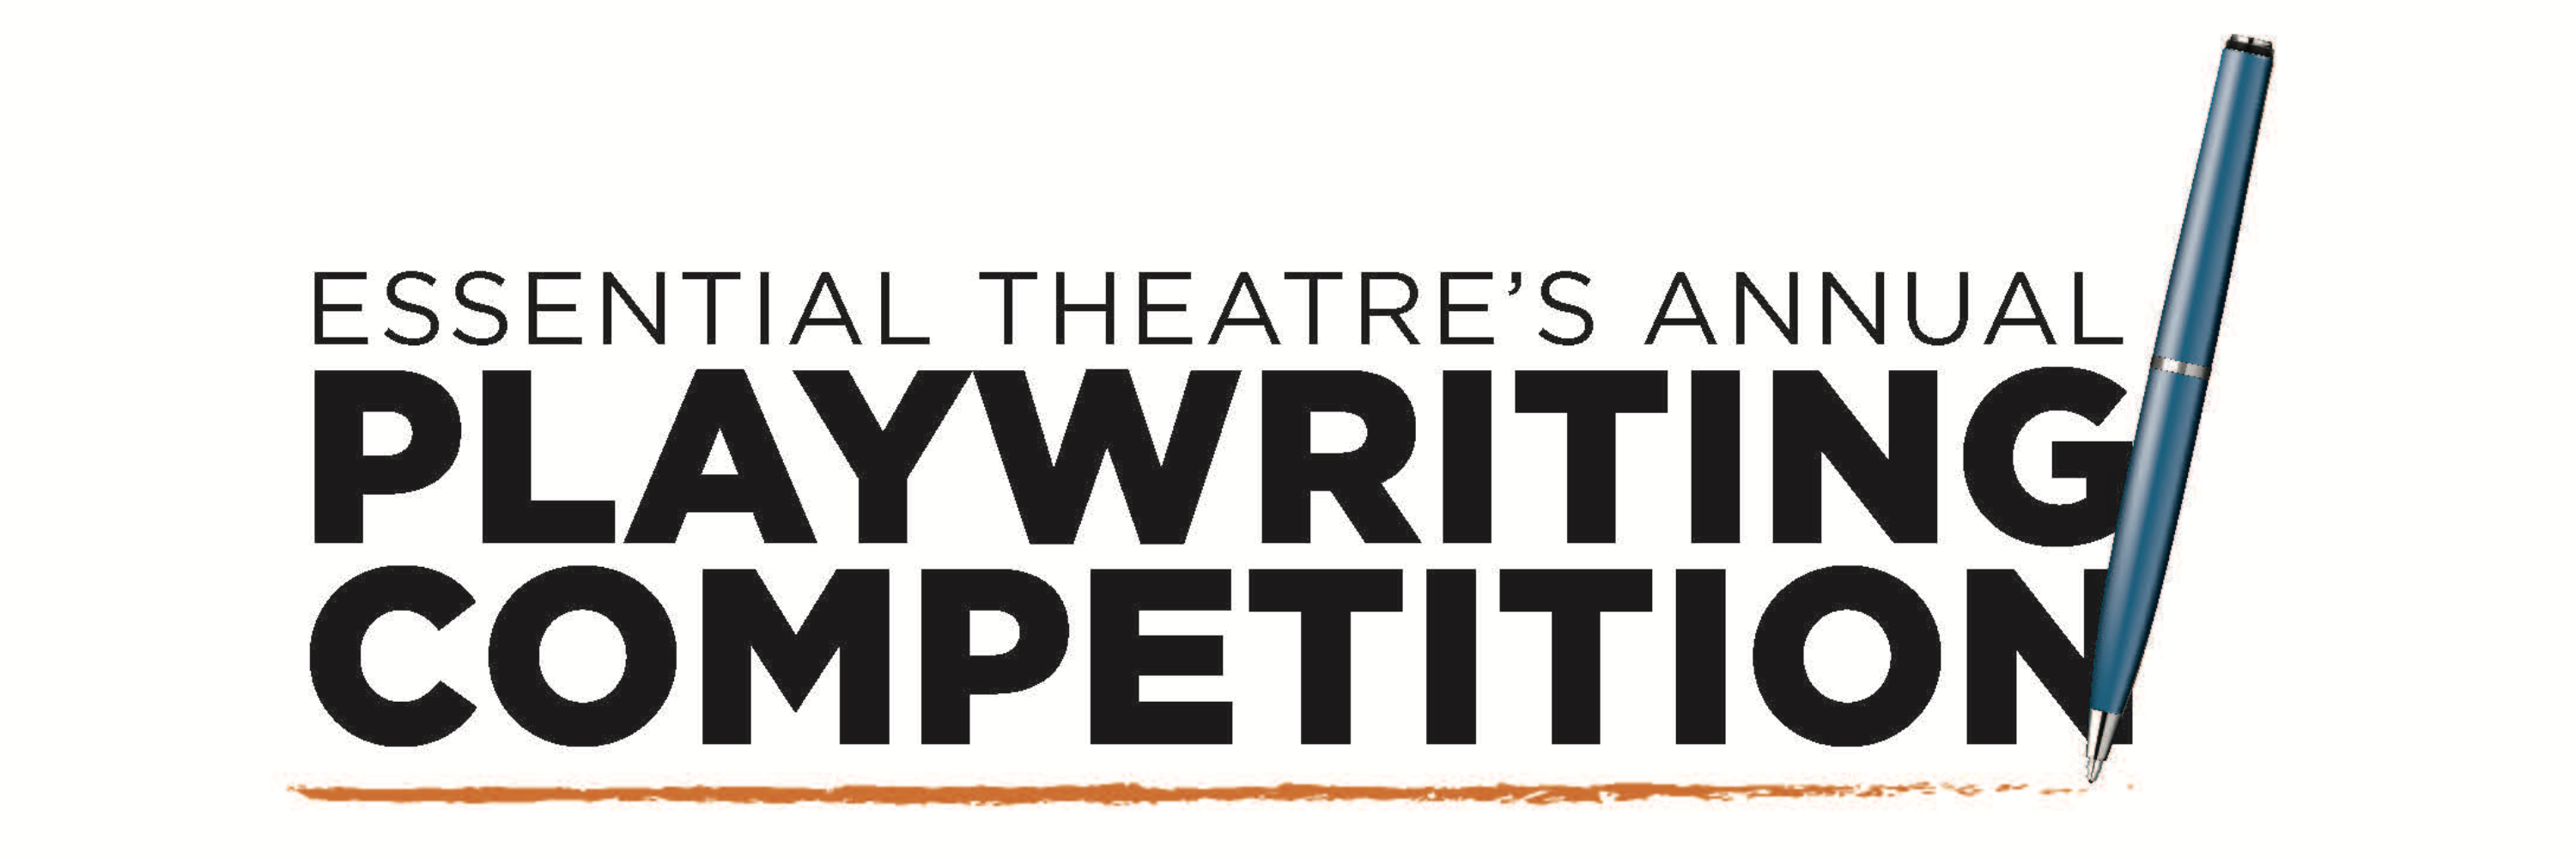 Essential Theatre Playwriting Competition Award for Georgia Playwrights' playscripts